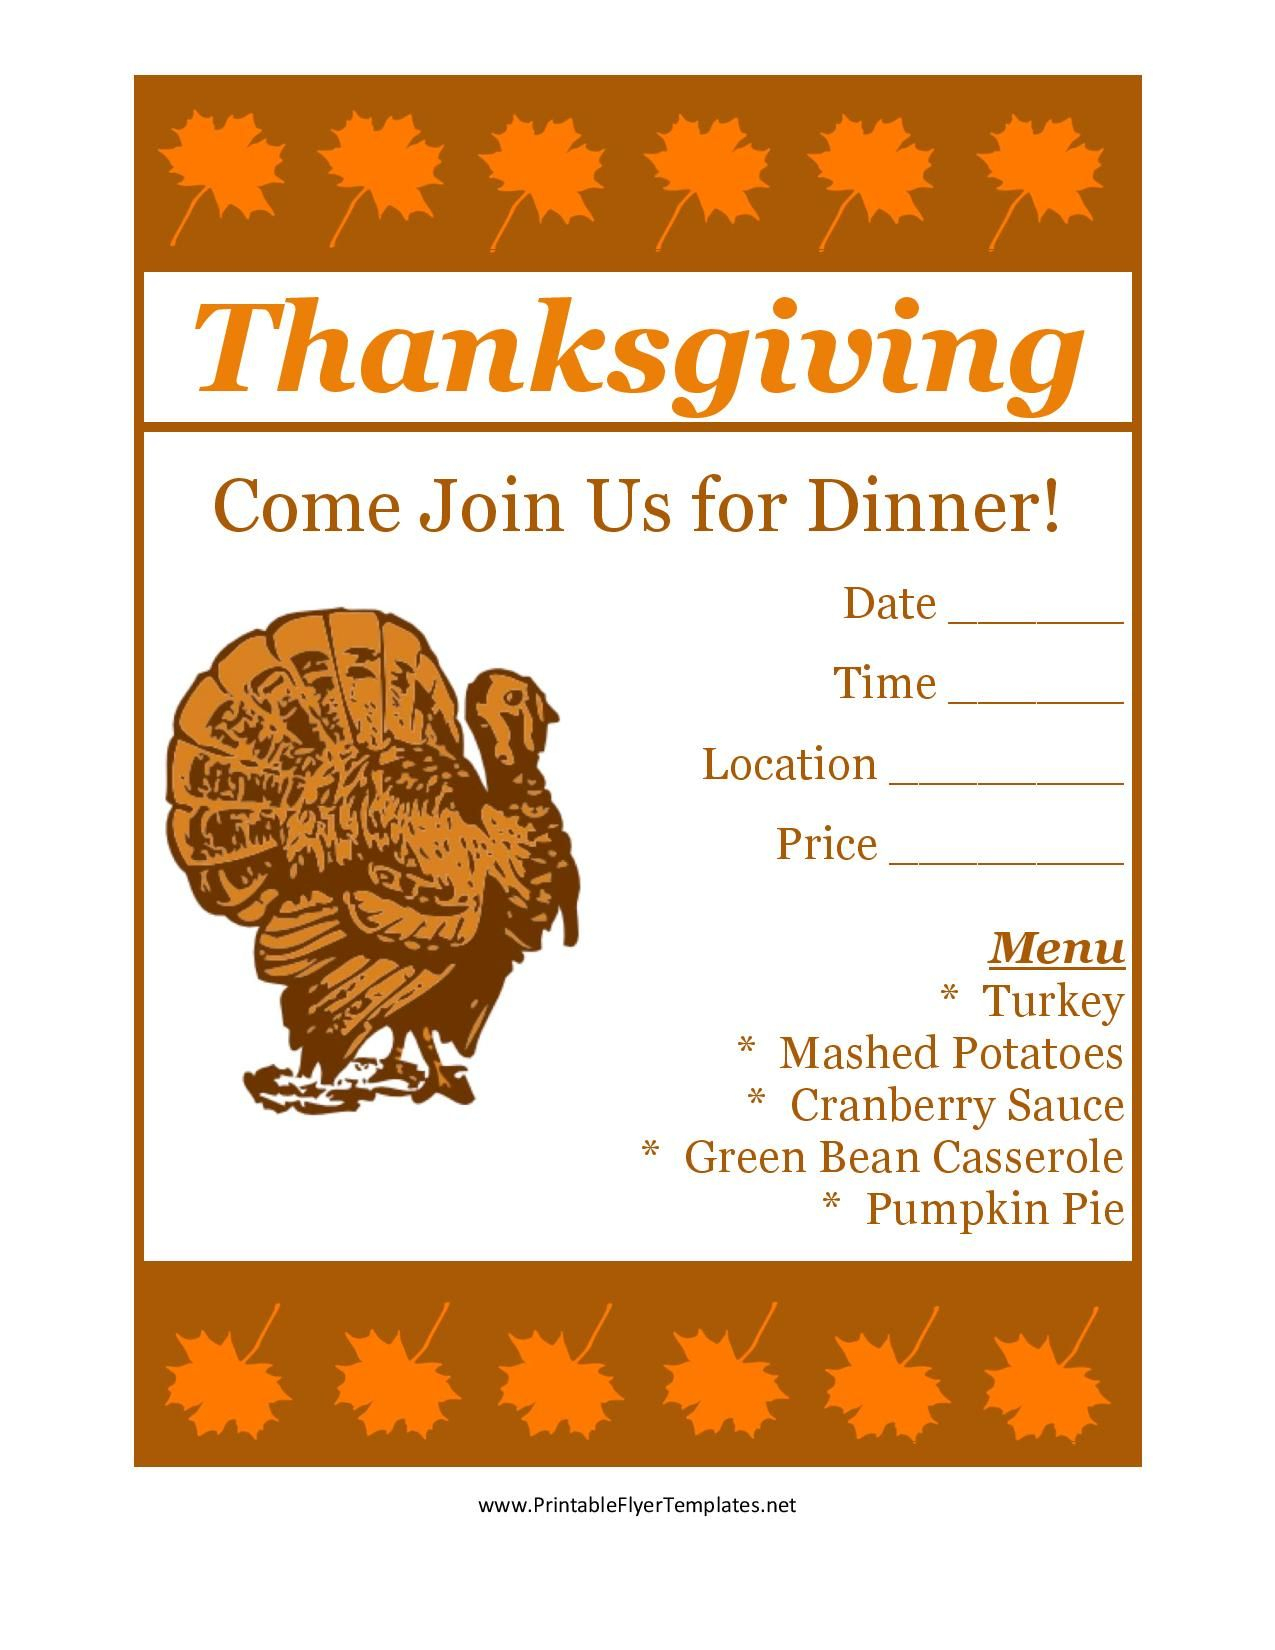 Free Printable Thanksgiving Flyer Invintation Template | Holiday's - Free Printable Flyers For Church